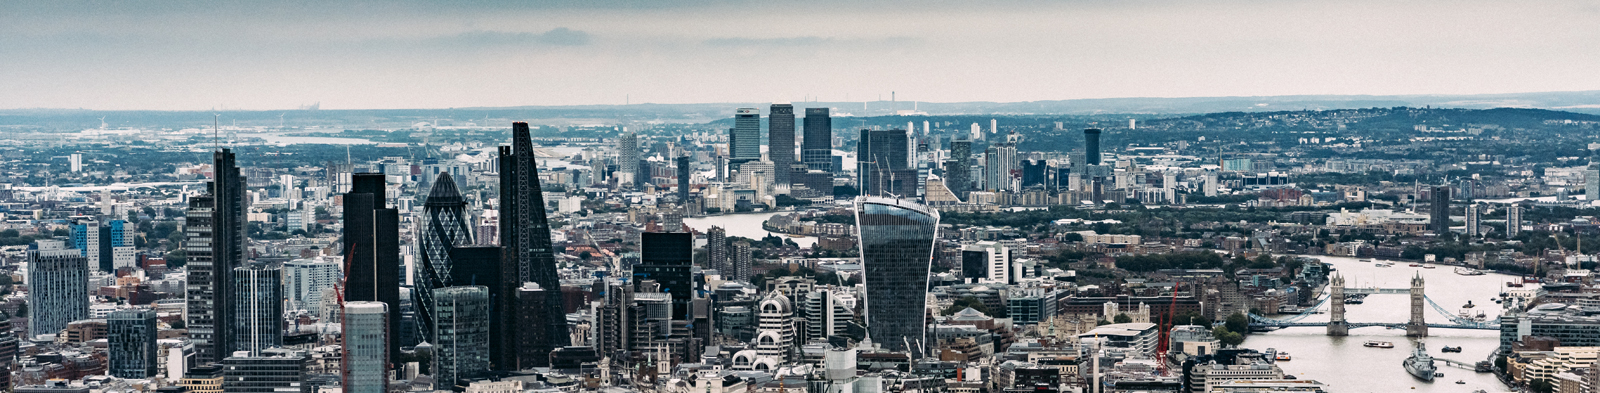 Aerial picture of London